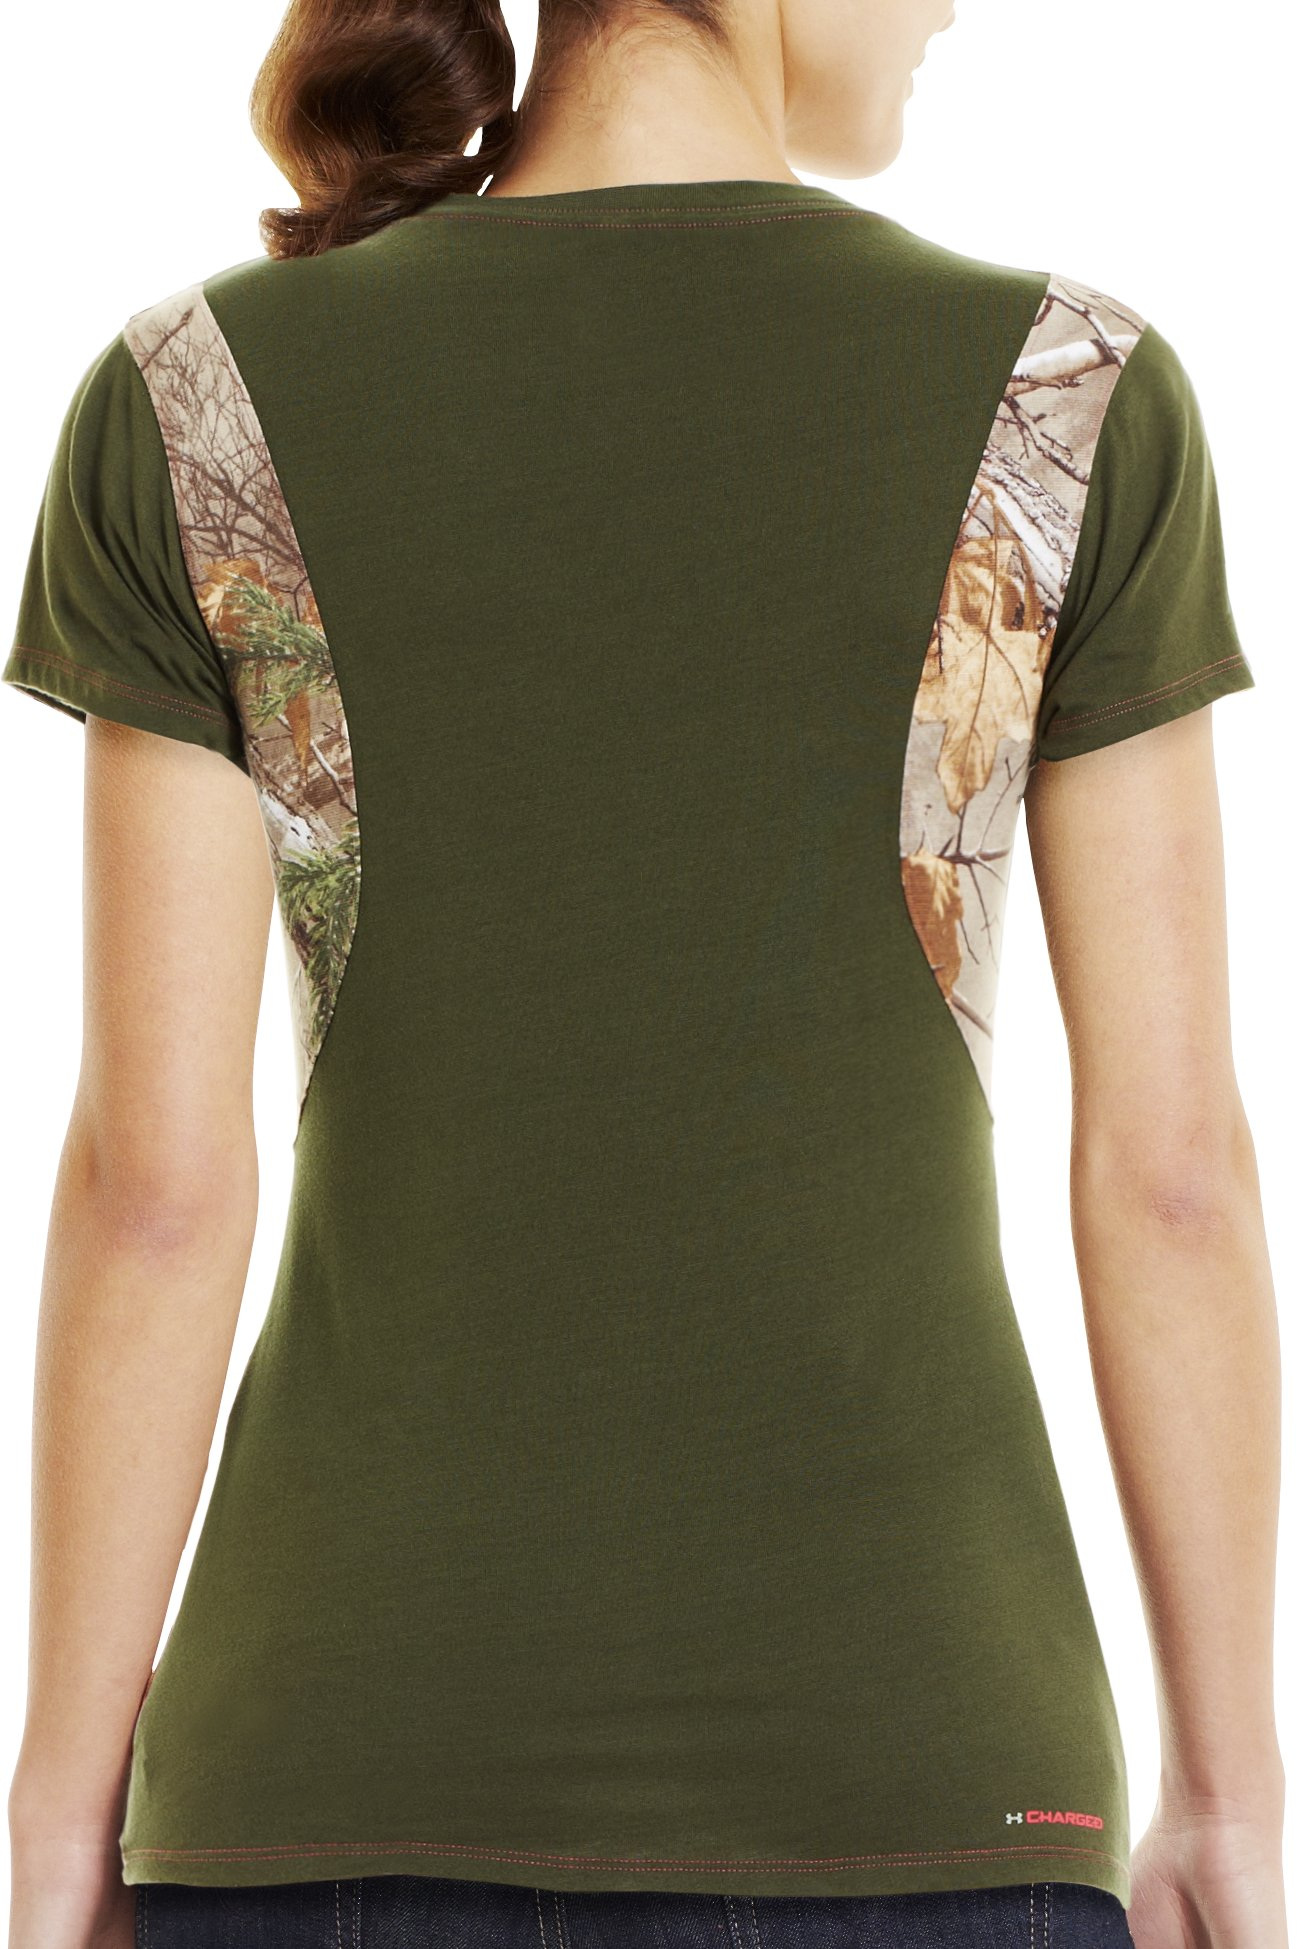 Women's Charged Cotton® Camo V-Neck, Rifle Green, Back